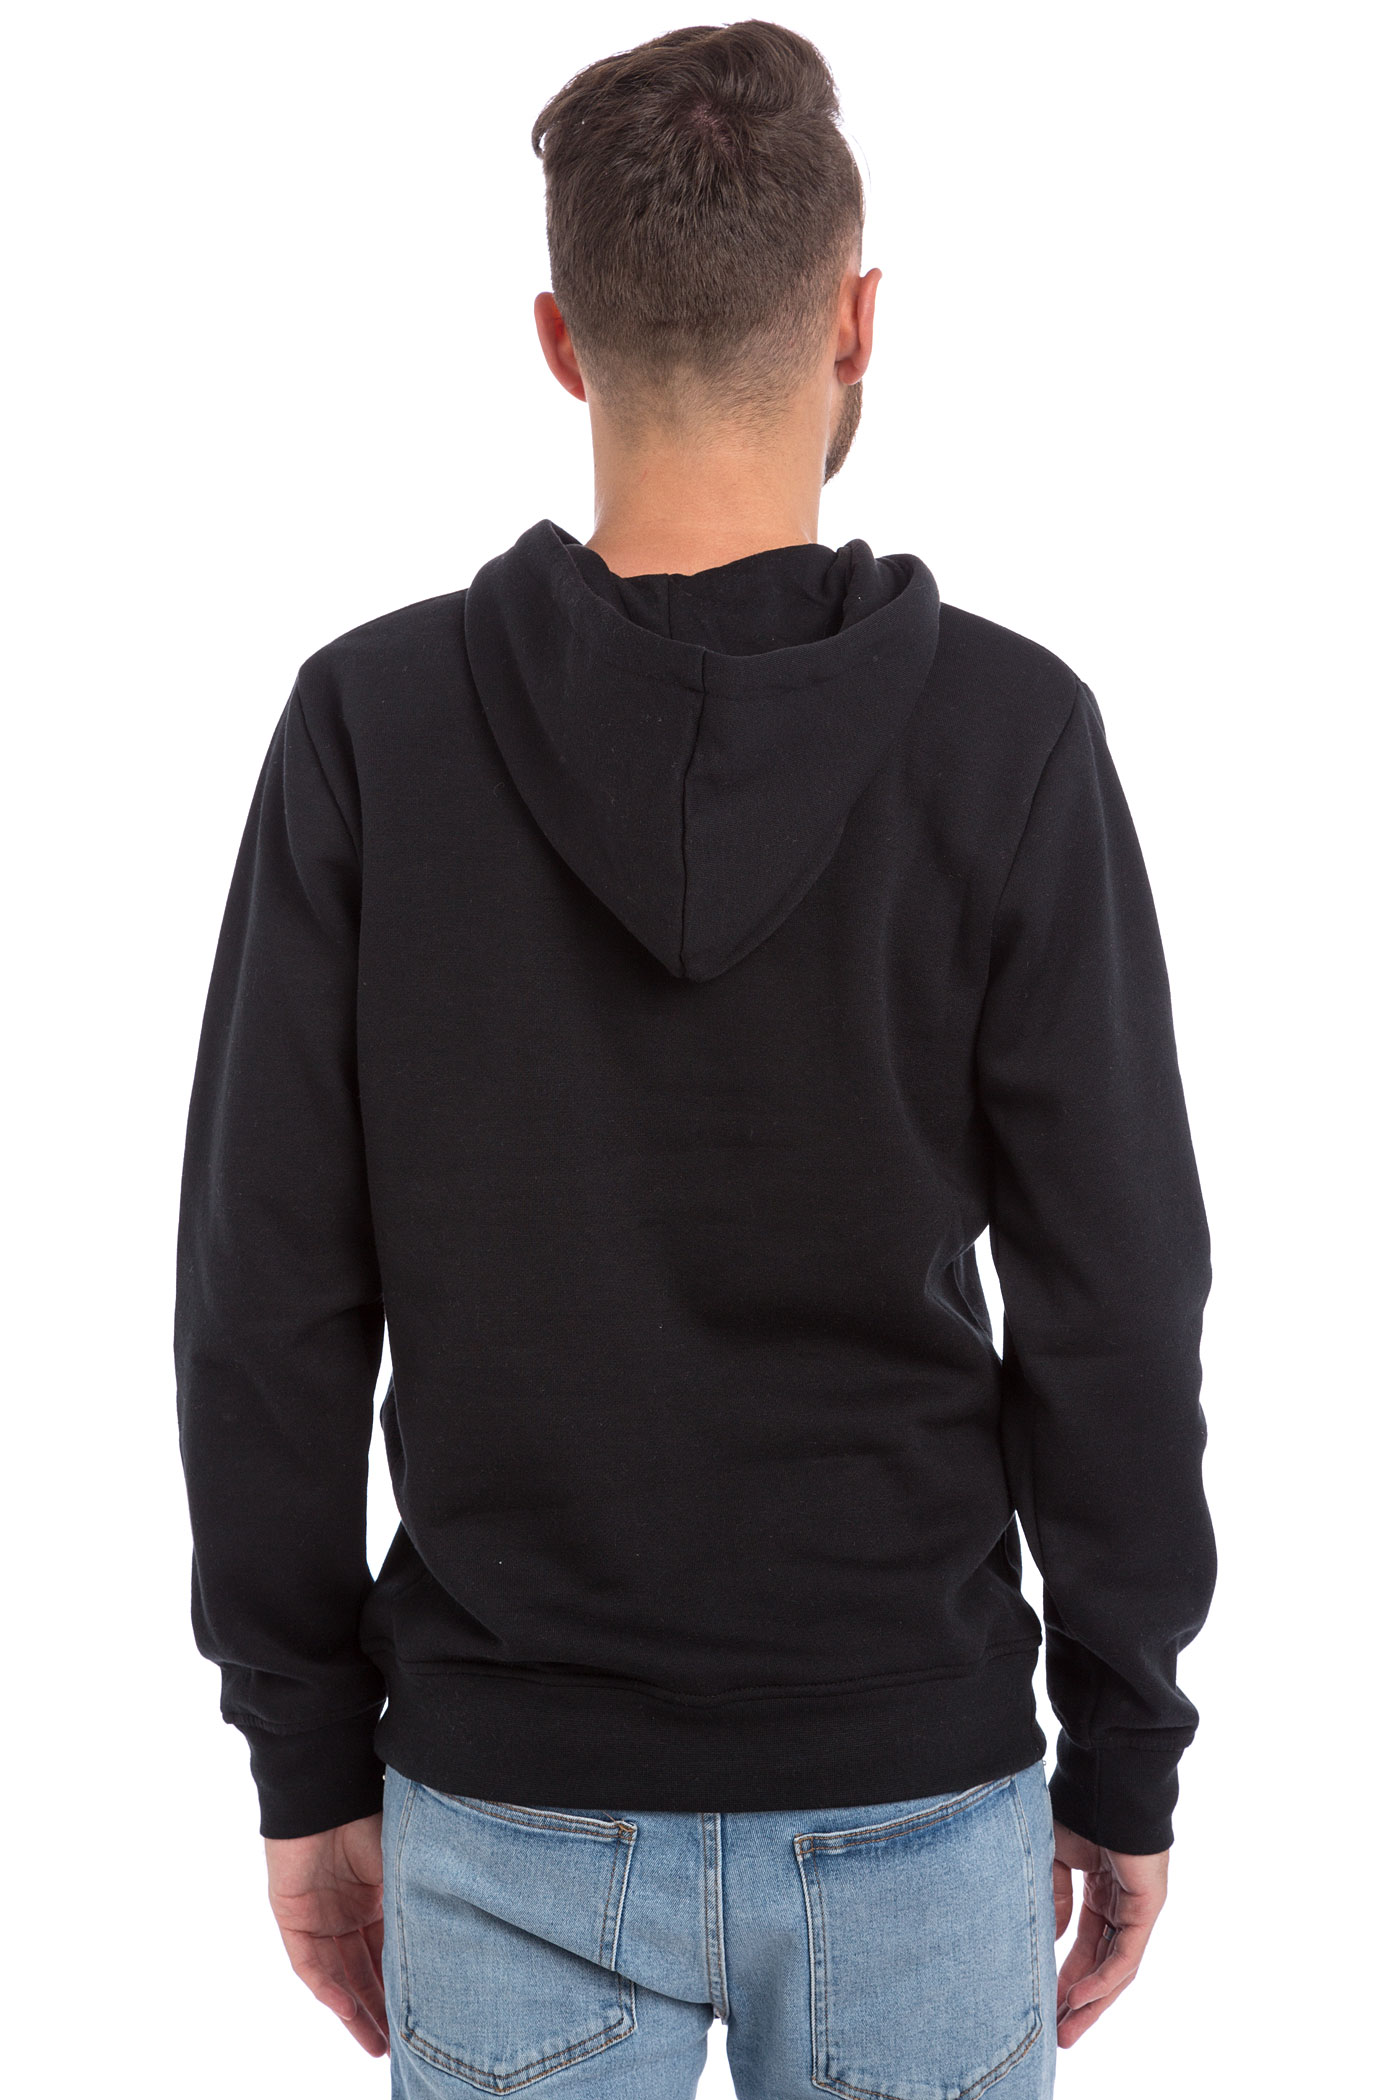 Element hoodies